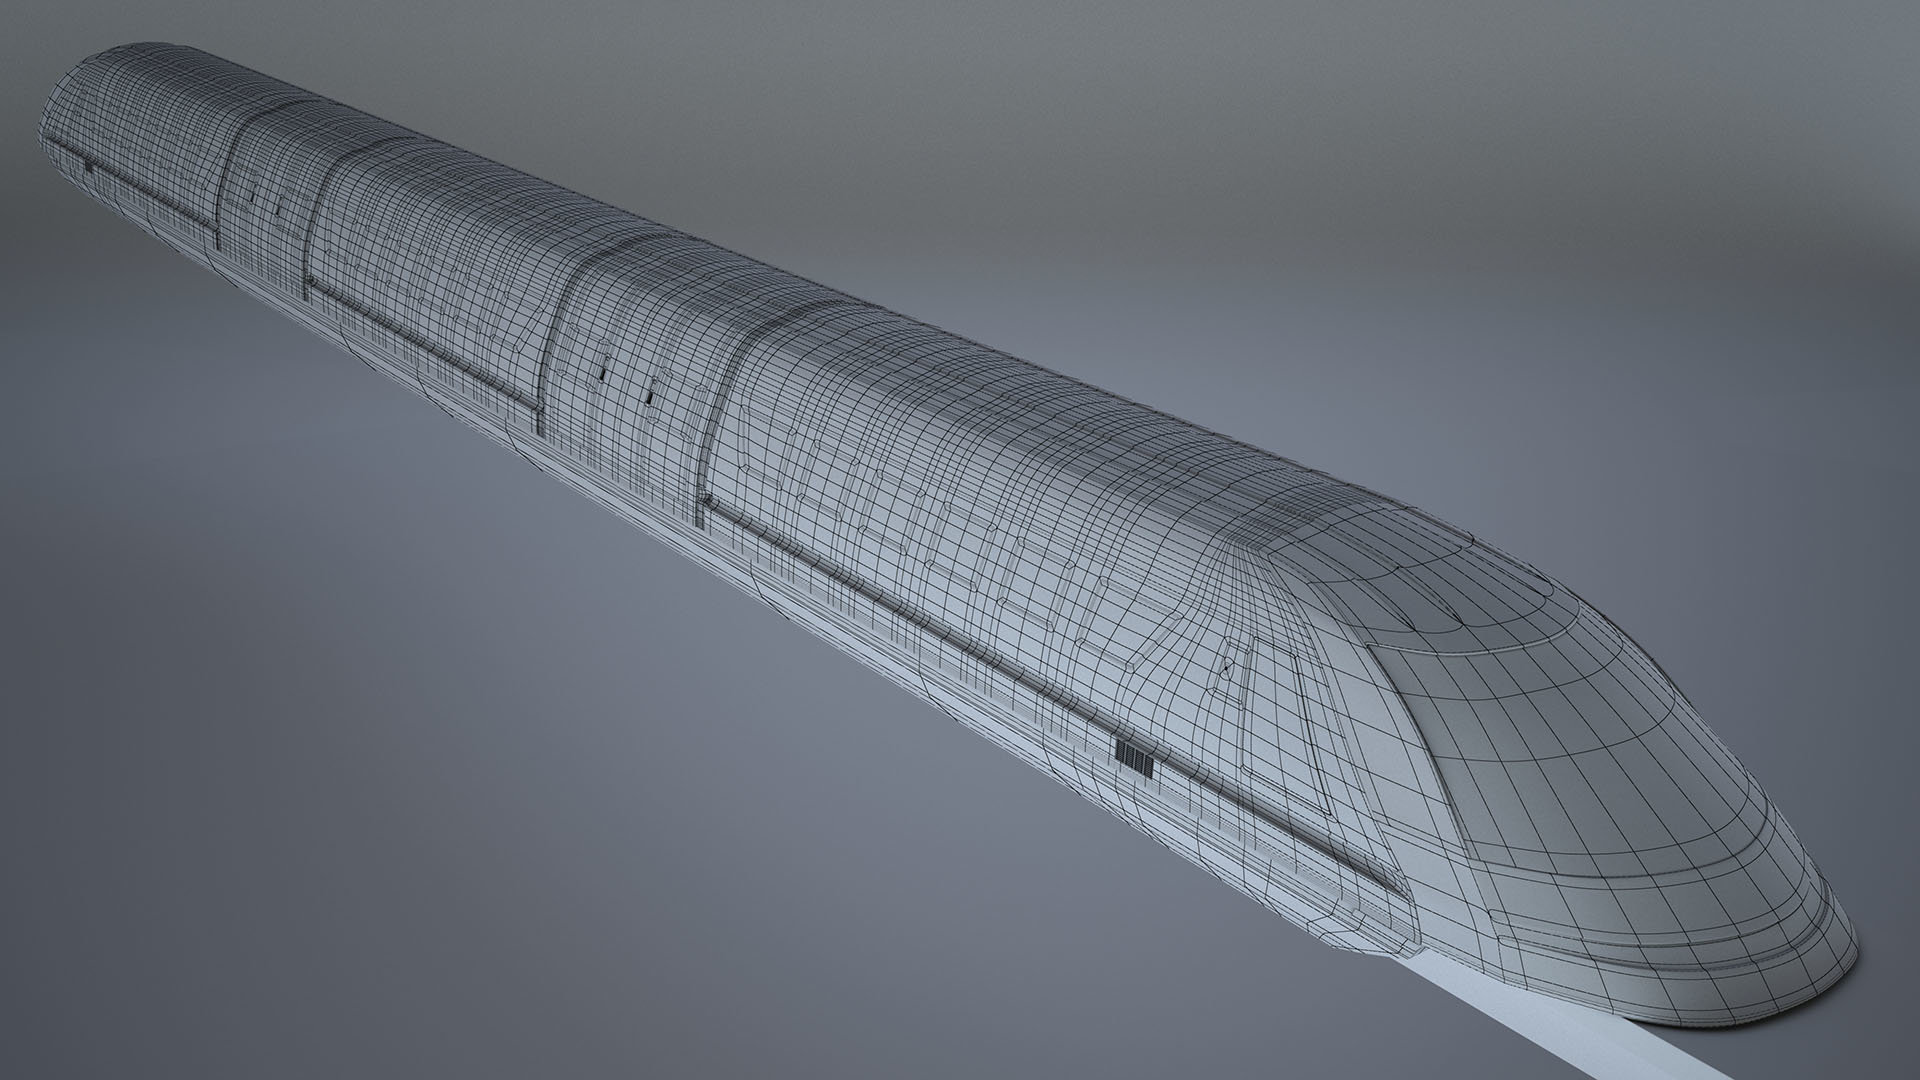 Benjamin becker monorail grey 1 wireframe